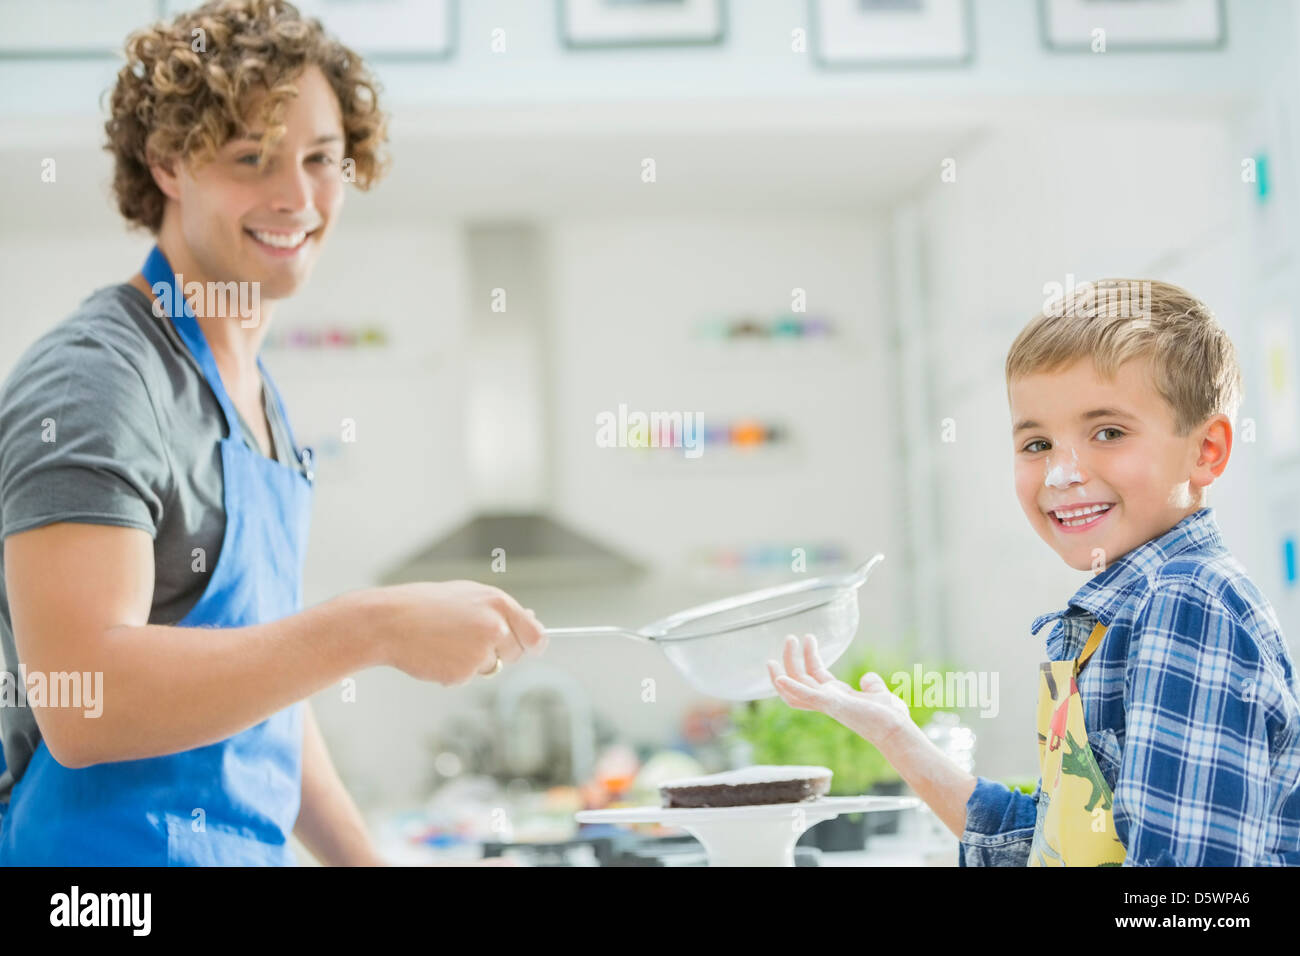 Father and son baking in kitchen - Stock Image